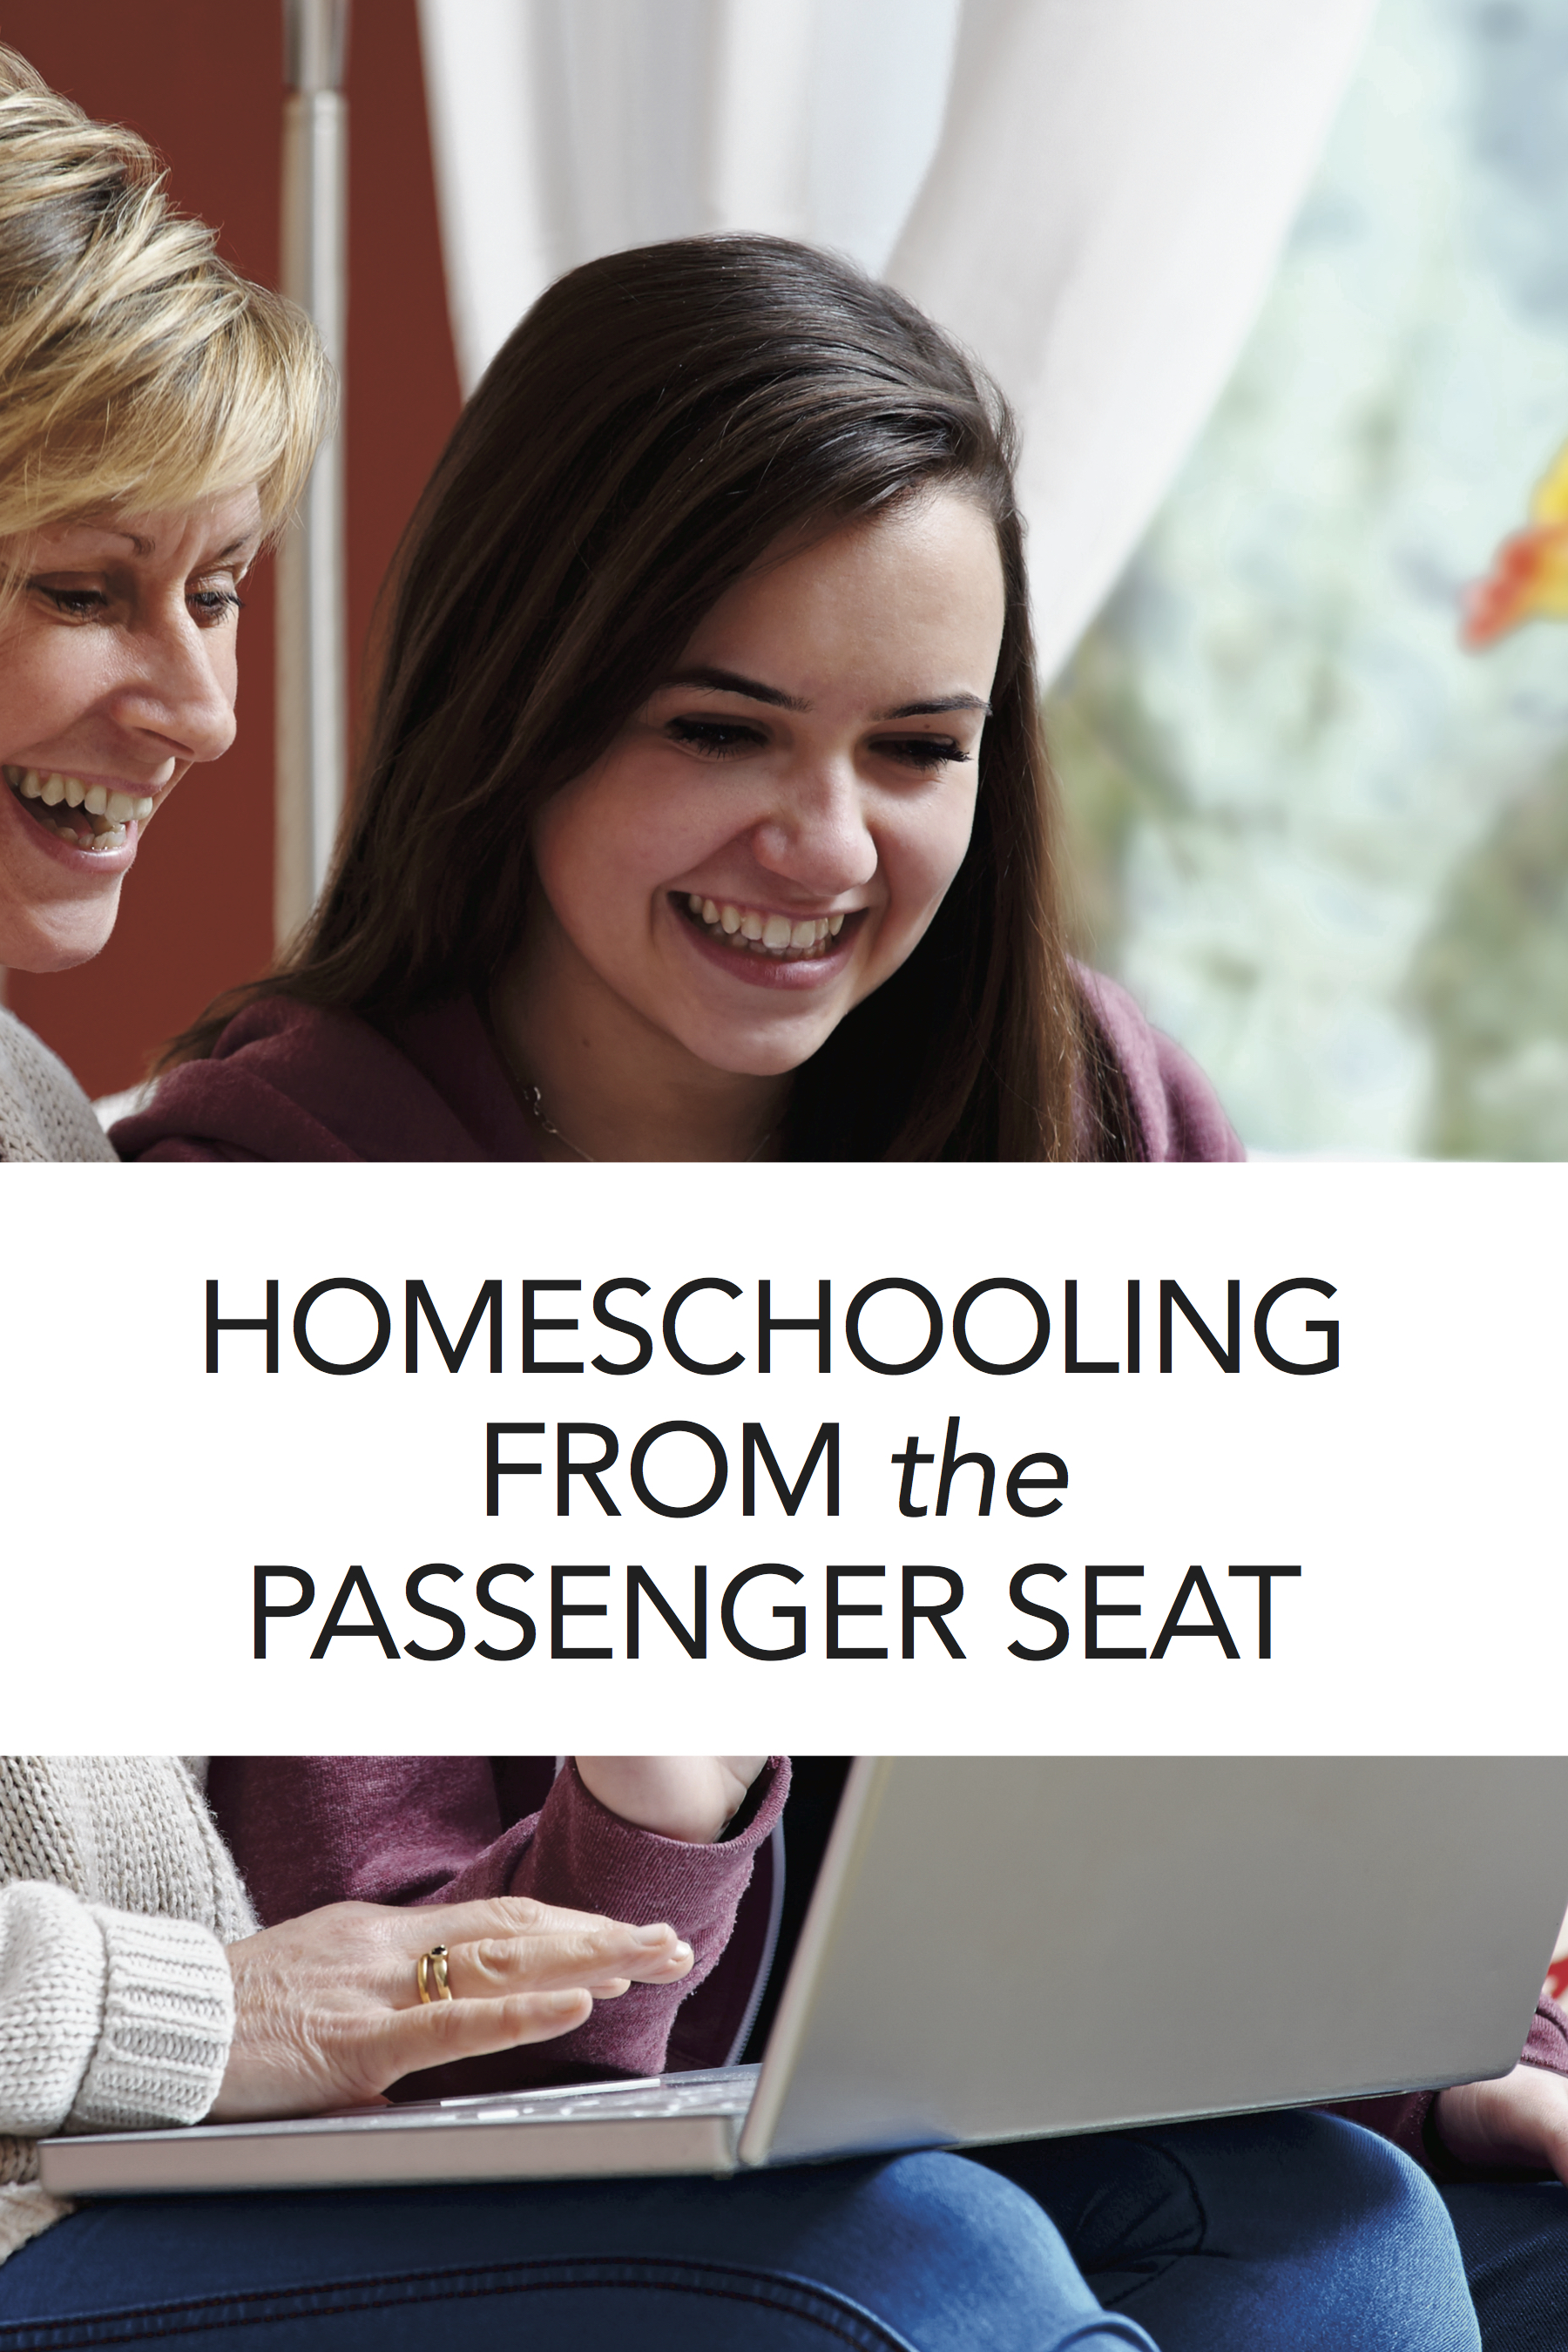 When your homeschooler starts to become more independent, your role as a homeschool parent changes. Love this!